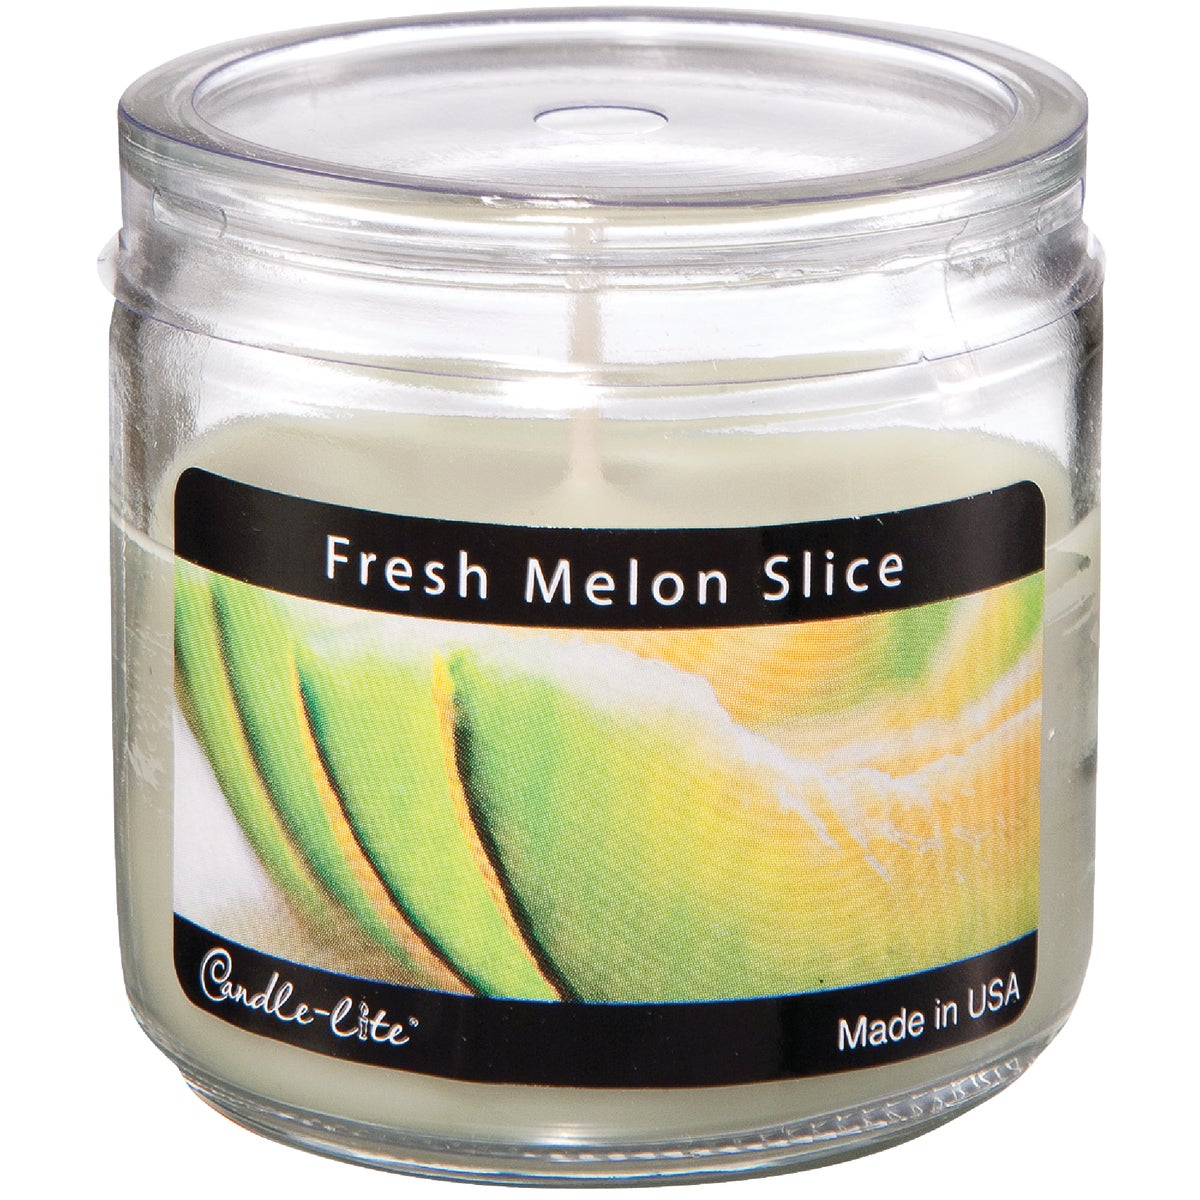 MELON SLICE JAR CANDLE